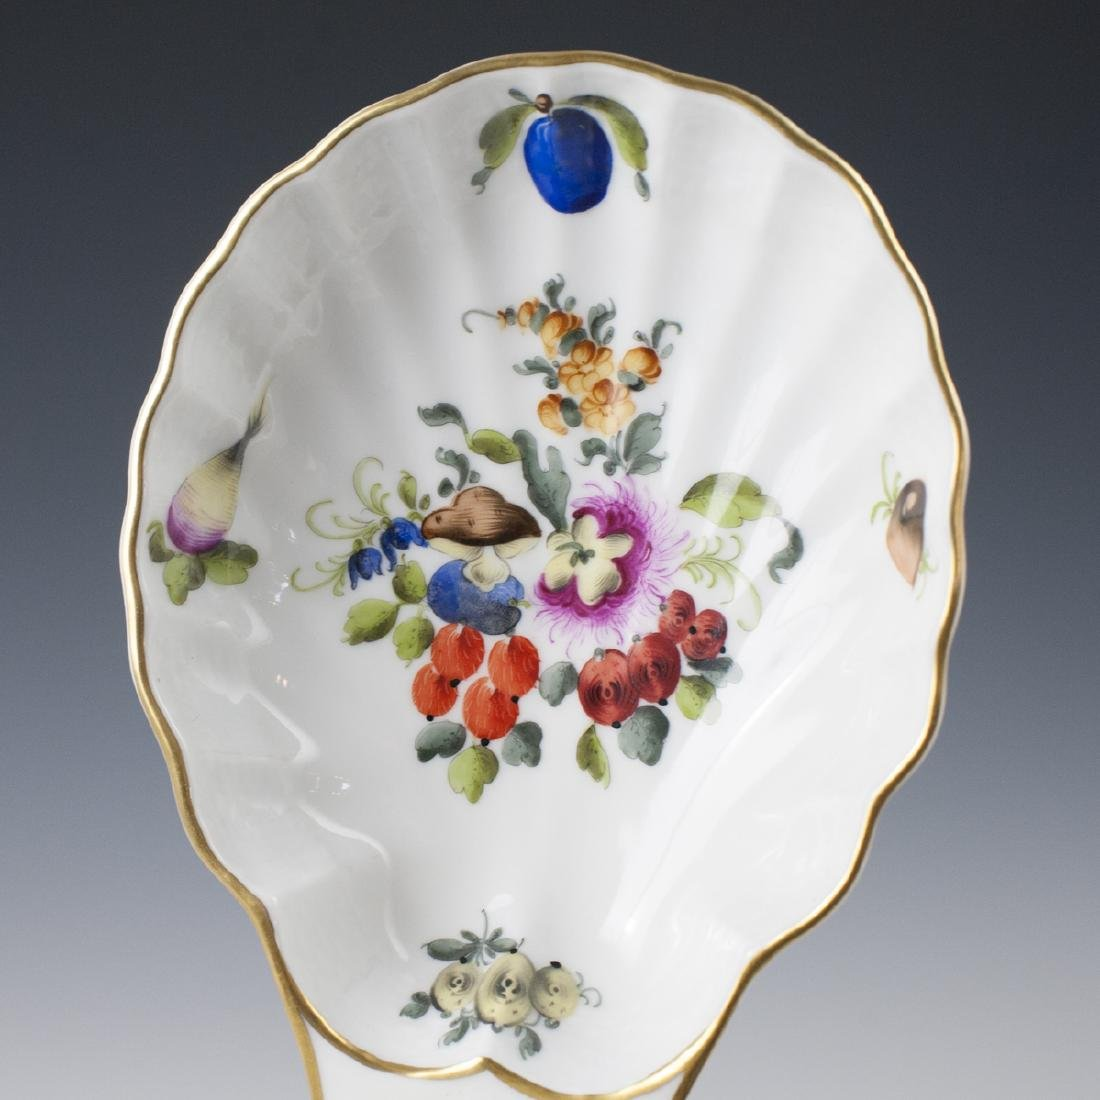 """Herend Porcelain """"Fruits & Flowers"""" Relish Dish - 5"""